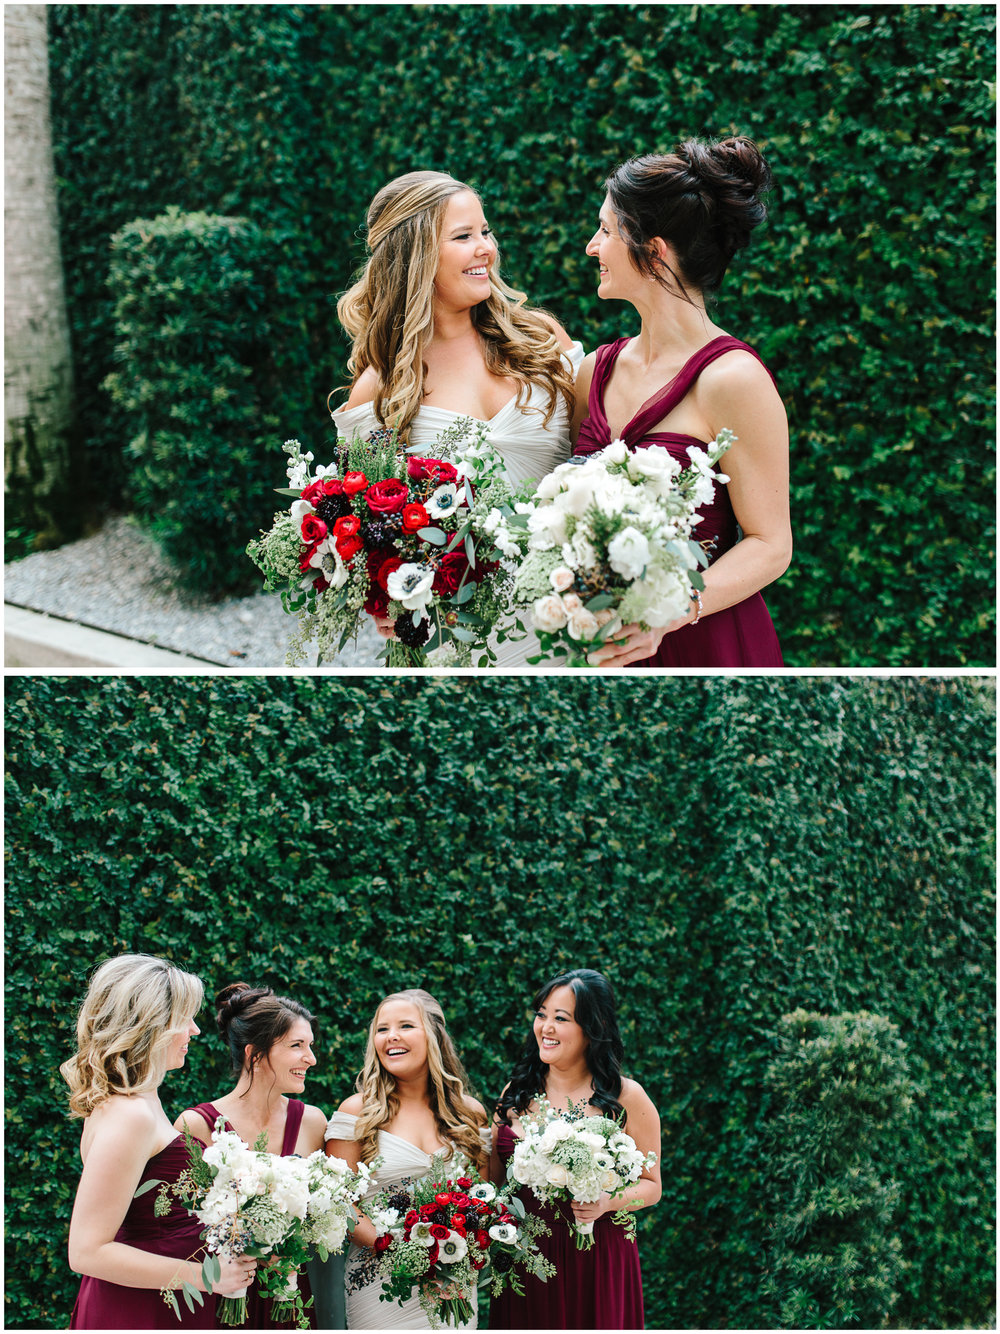 Jess and her bridesmaids, dressed in deep red